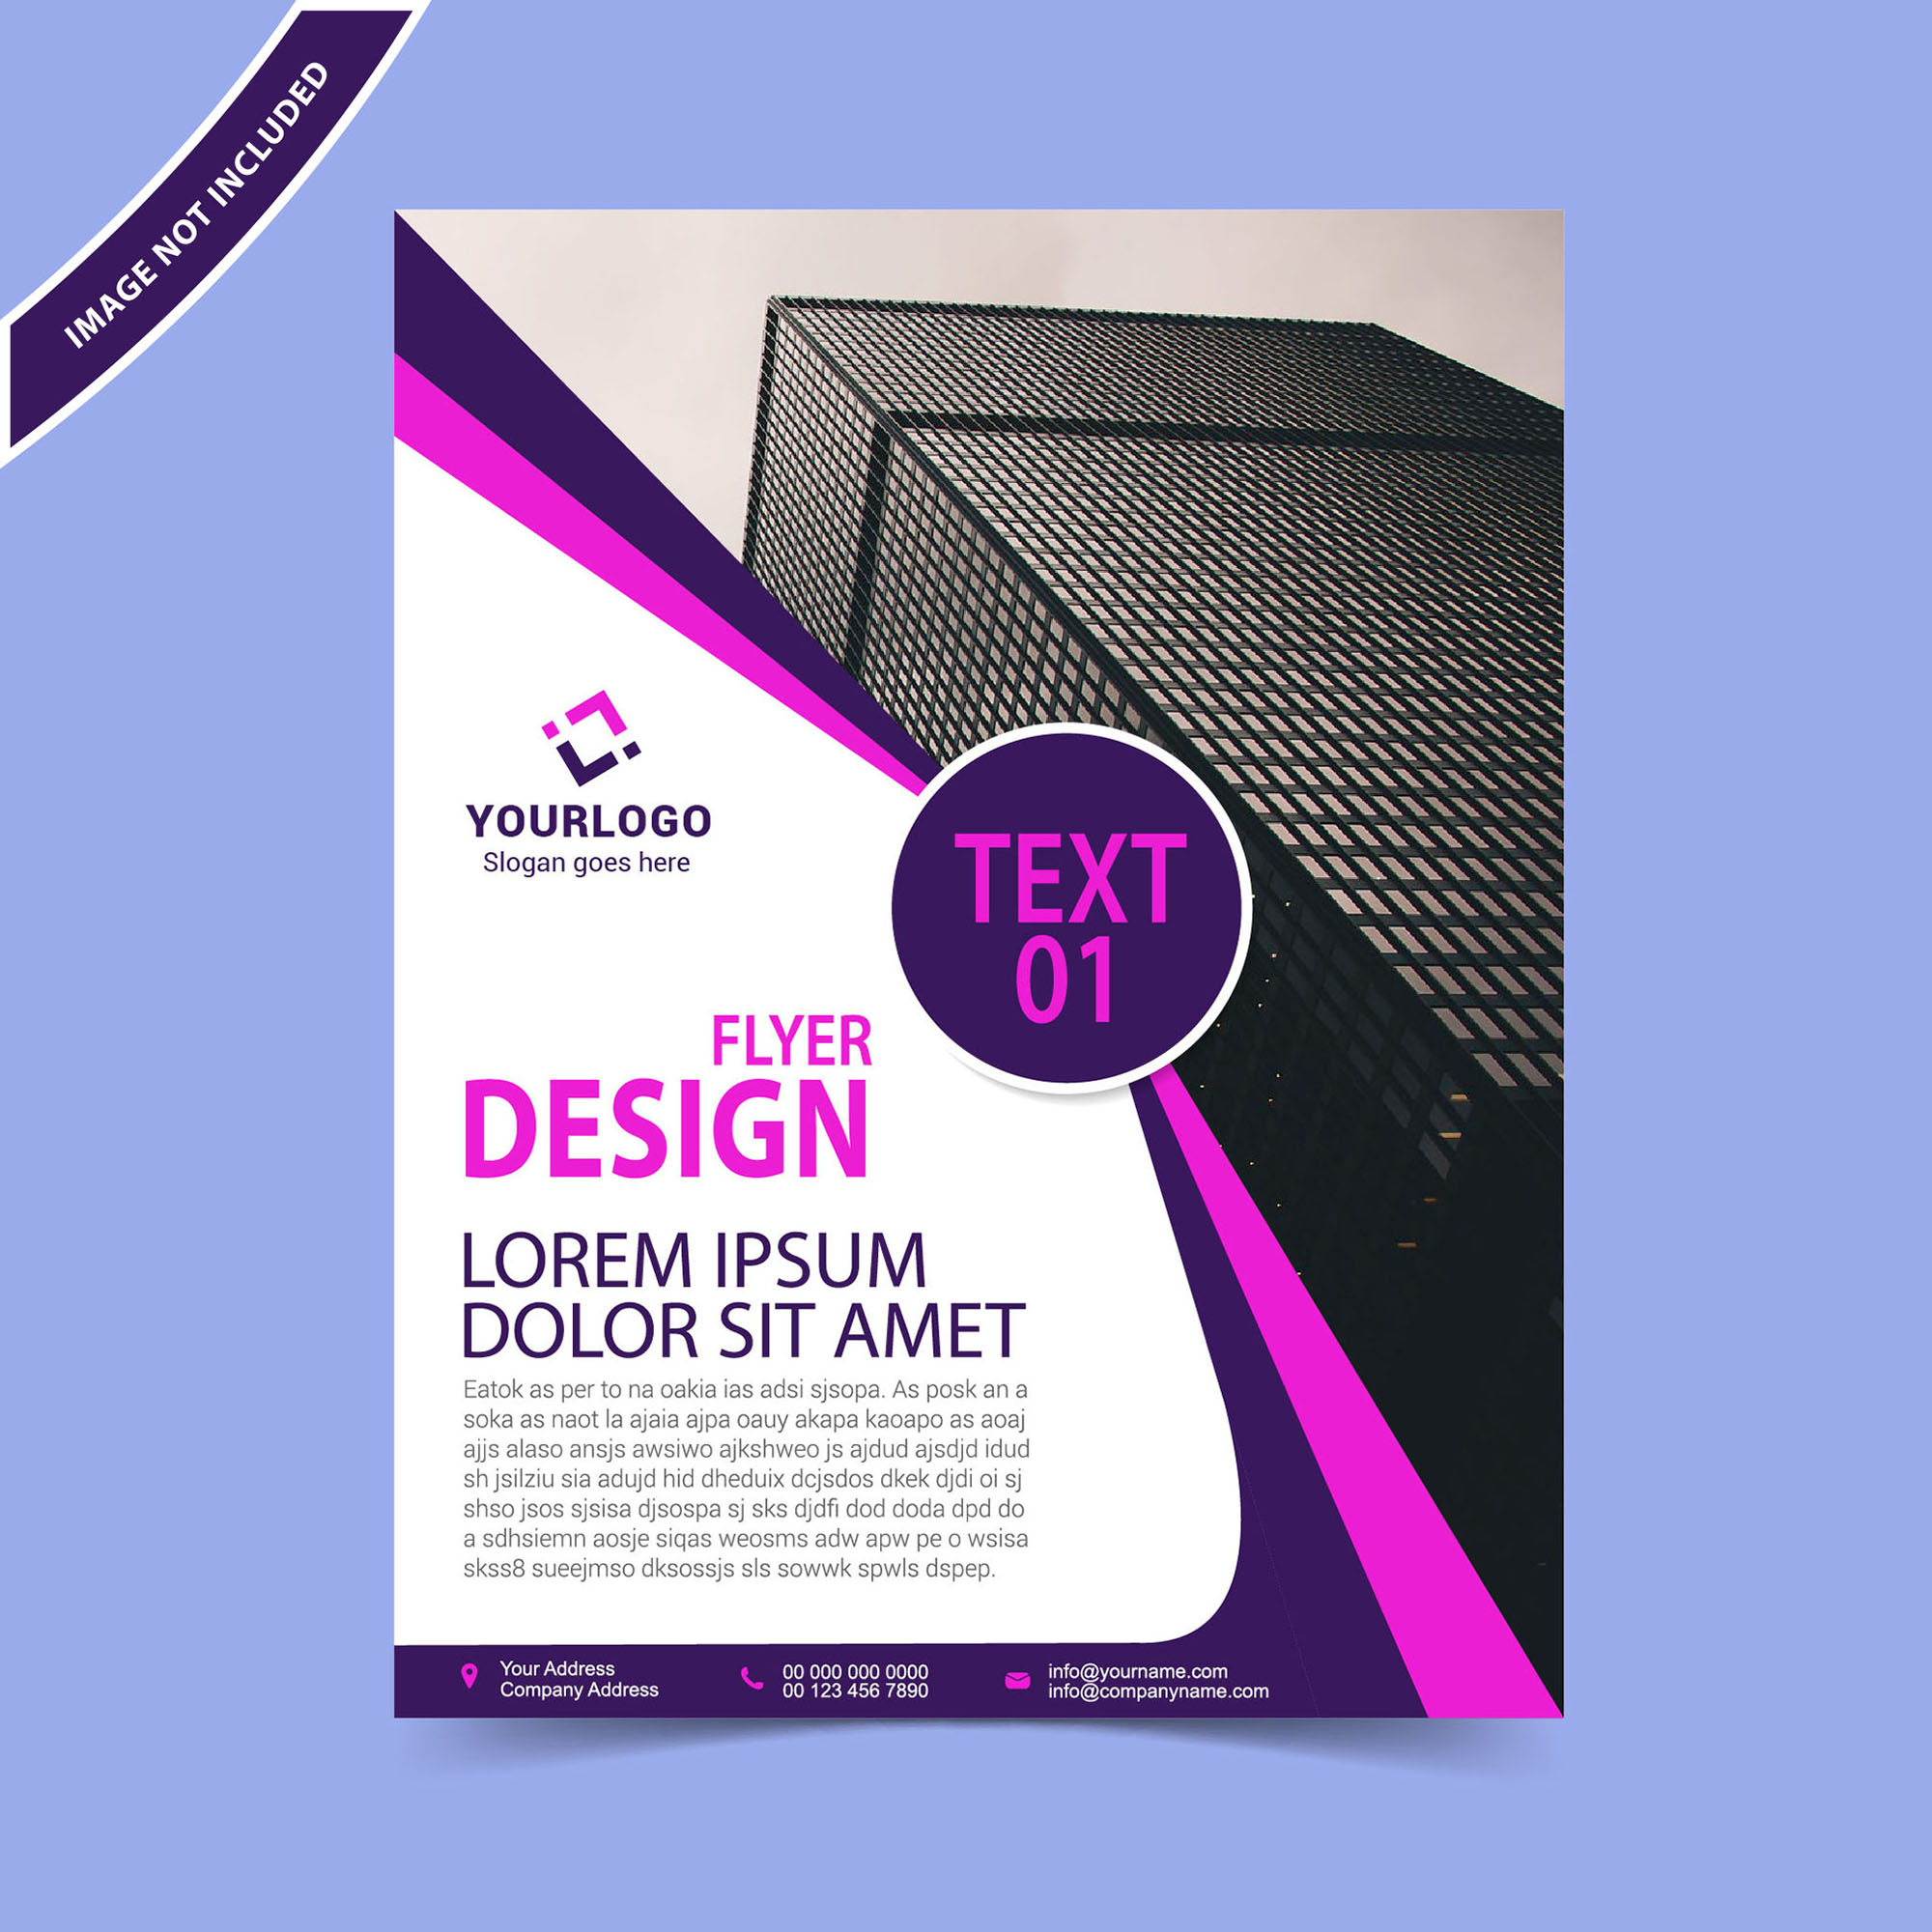 flyers flyer design flyer template free flyer design abstract business